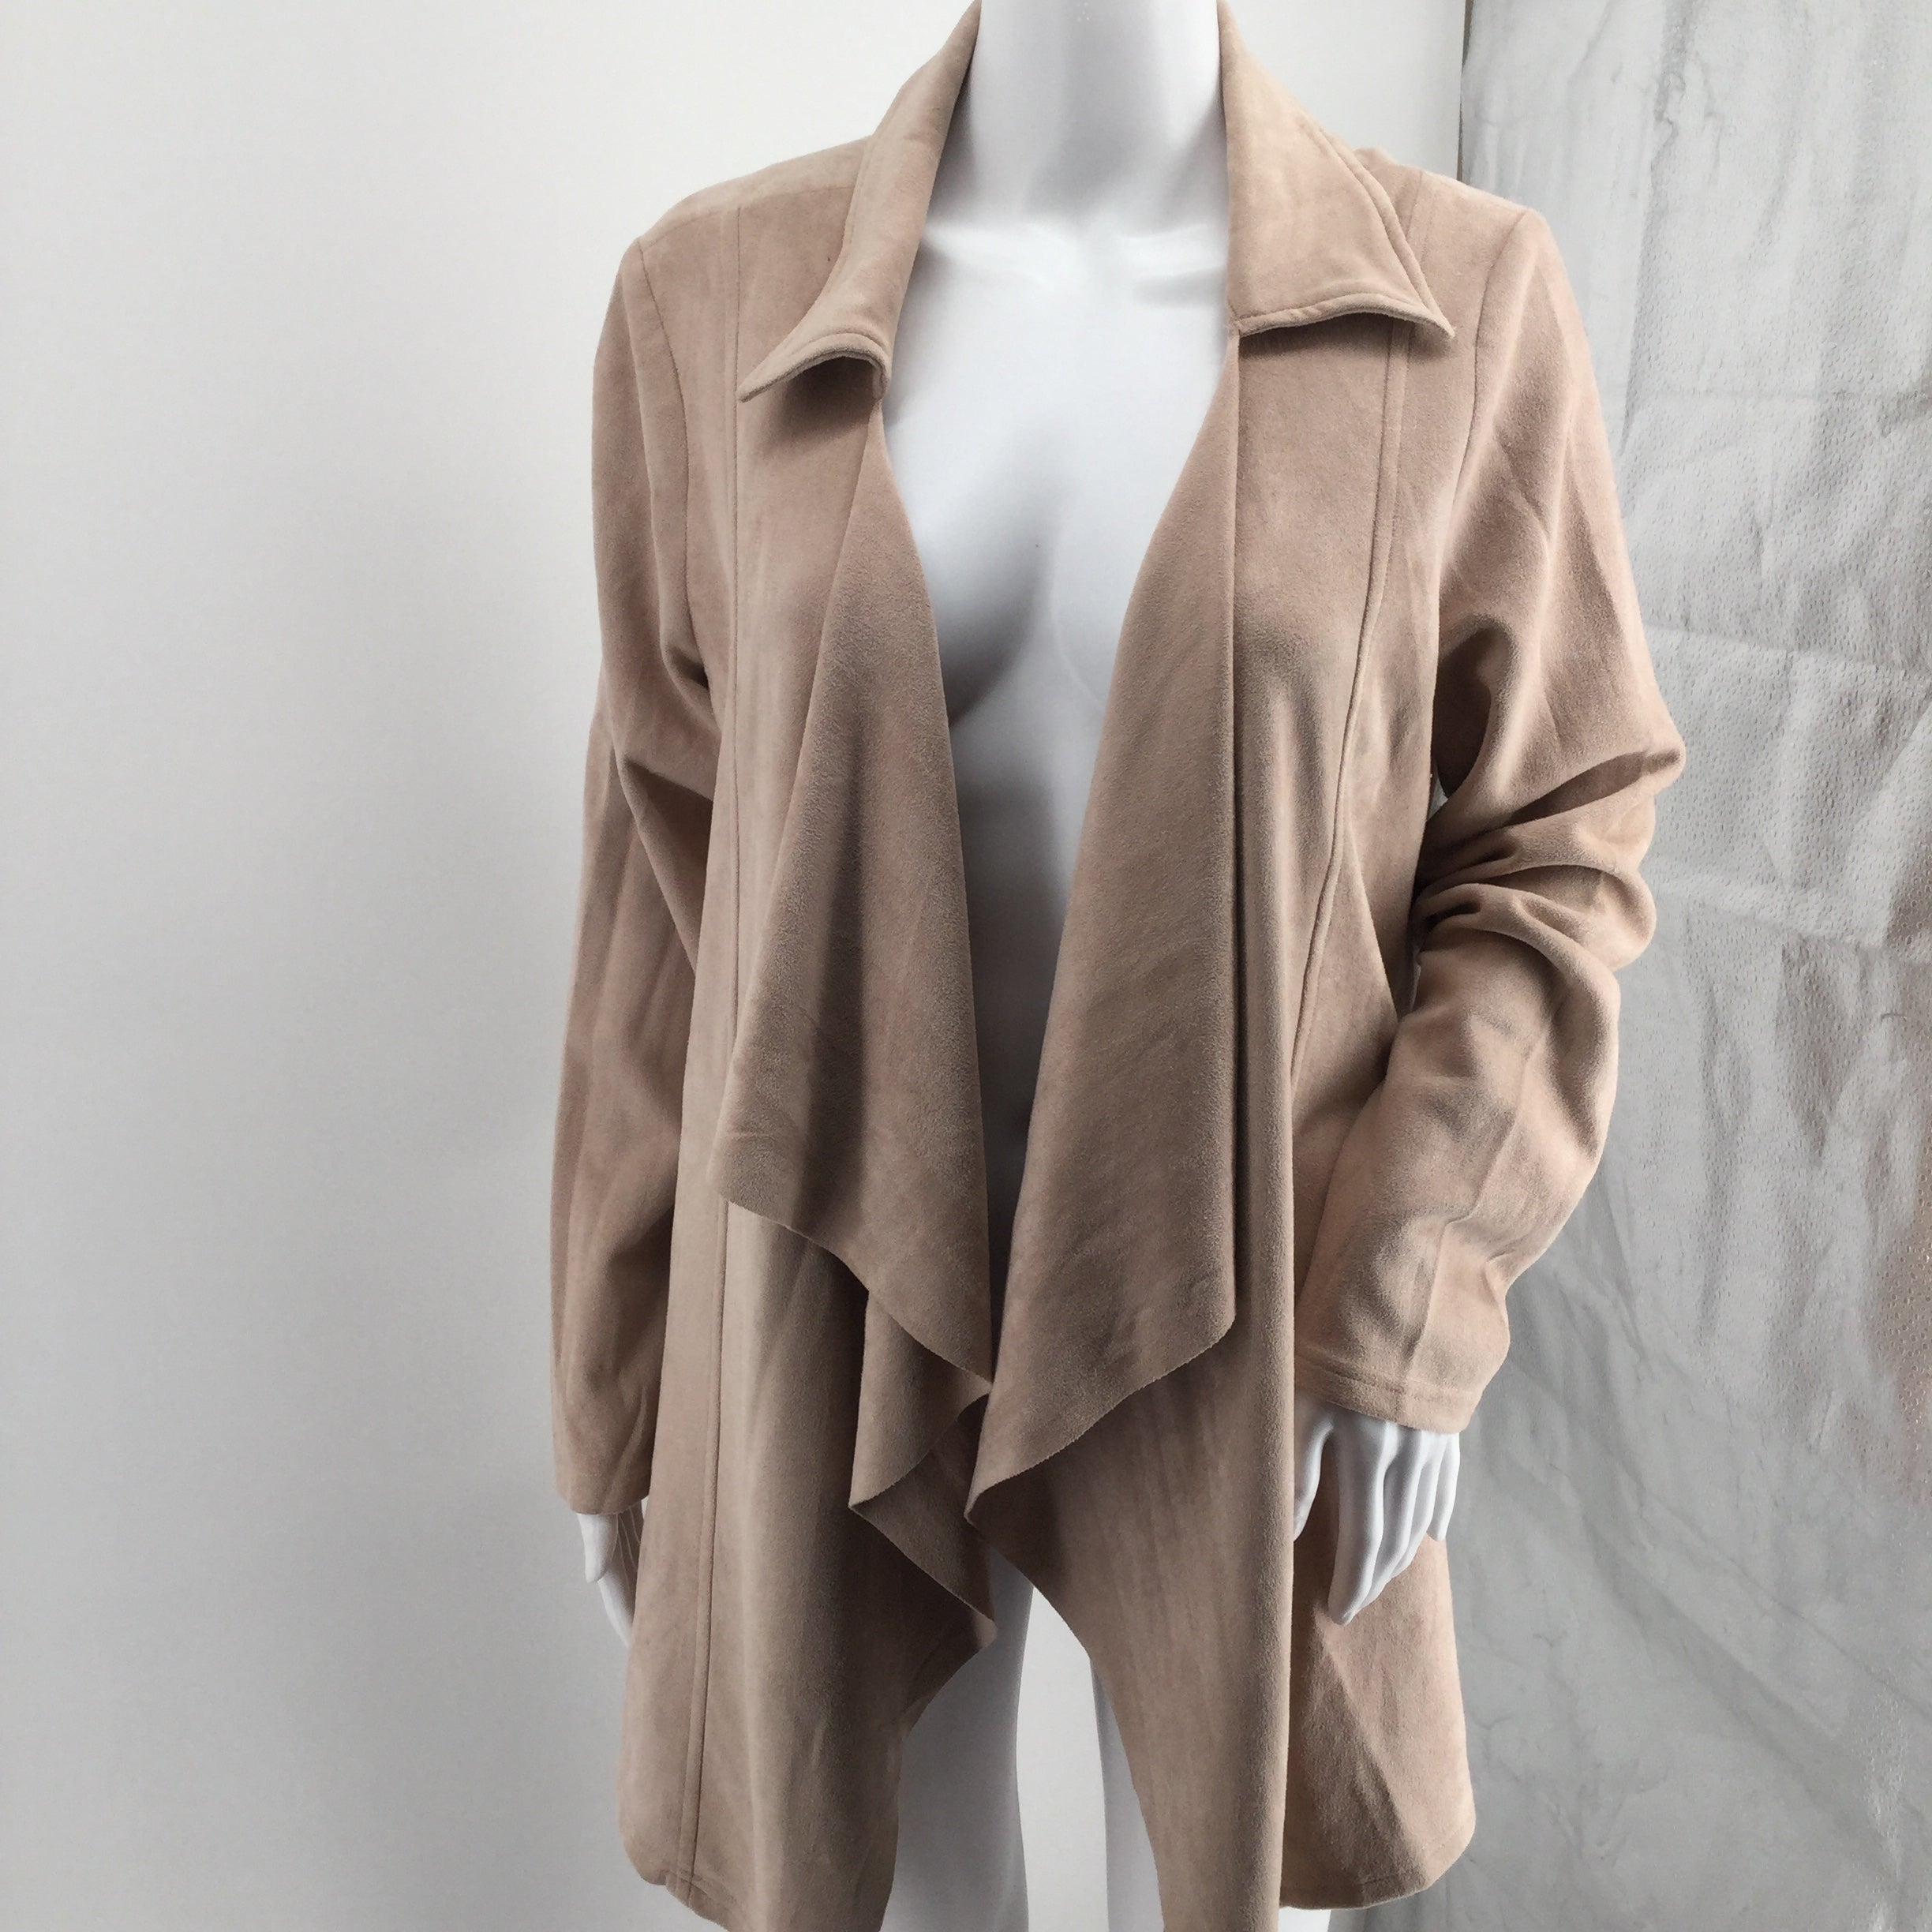 Charlie Paige - A TRENDY LIGHT DUSTY PINK CARDIGAN FROM CHARLIE PAIGE THAT IS PERFECT FOR NIGHT OR DAY AND KEEP YOU LOOKING CUTE WHILE KEEPING YOU WARM WITH THE SILKY SOFTNESS.